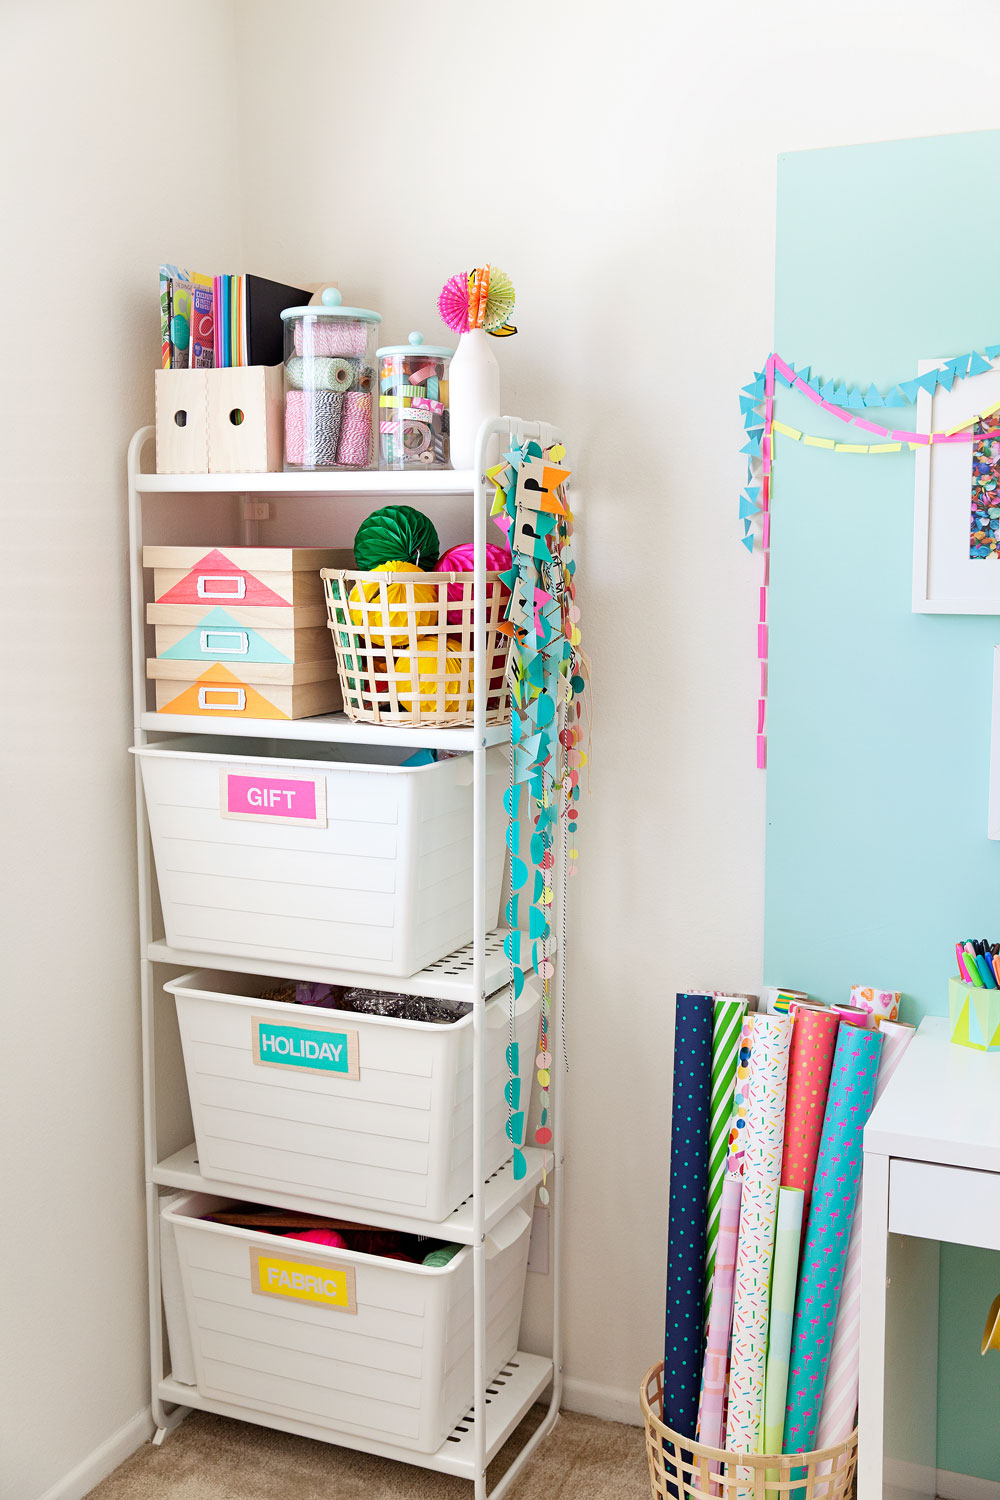 Get-organized-in-your-office-with-these-fun-and-colorful-storage-ideas